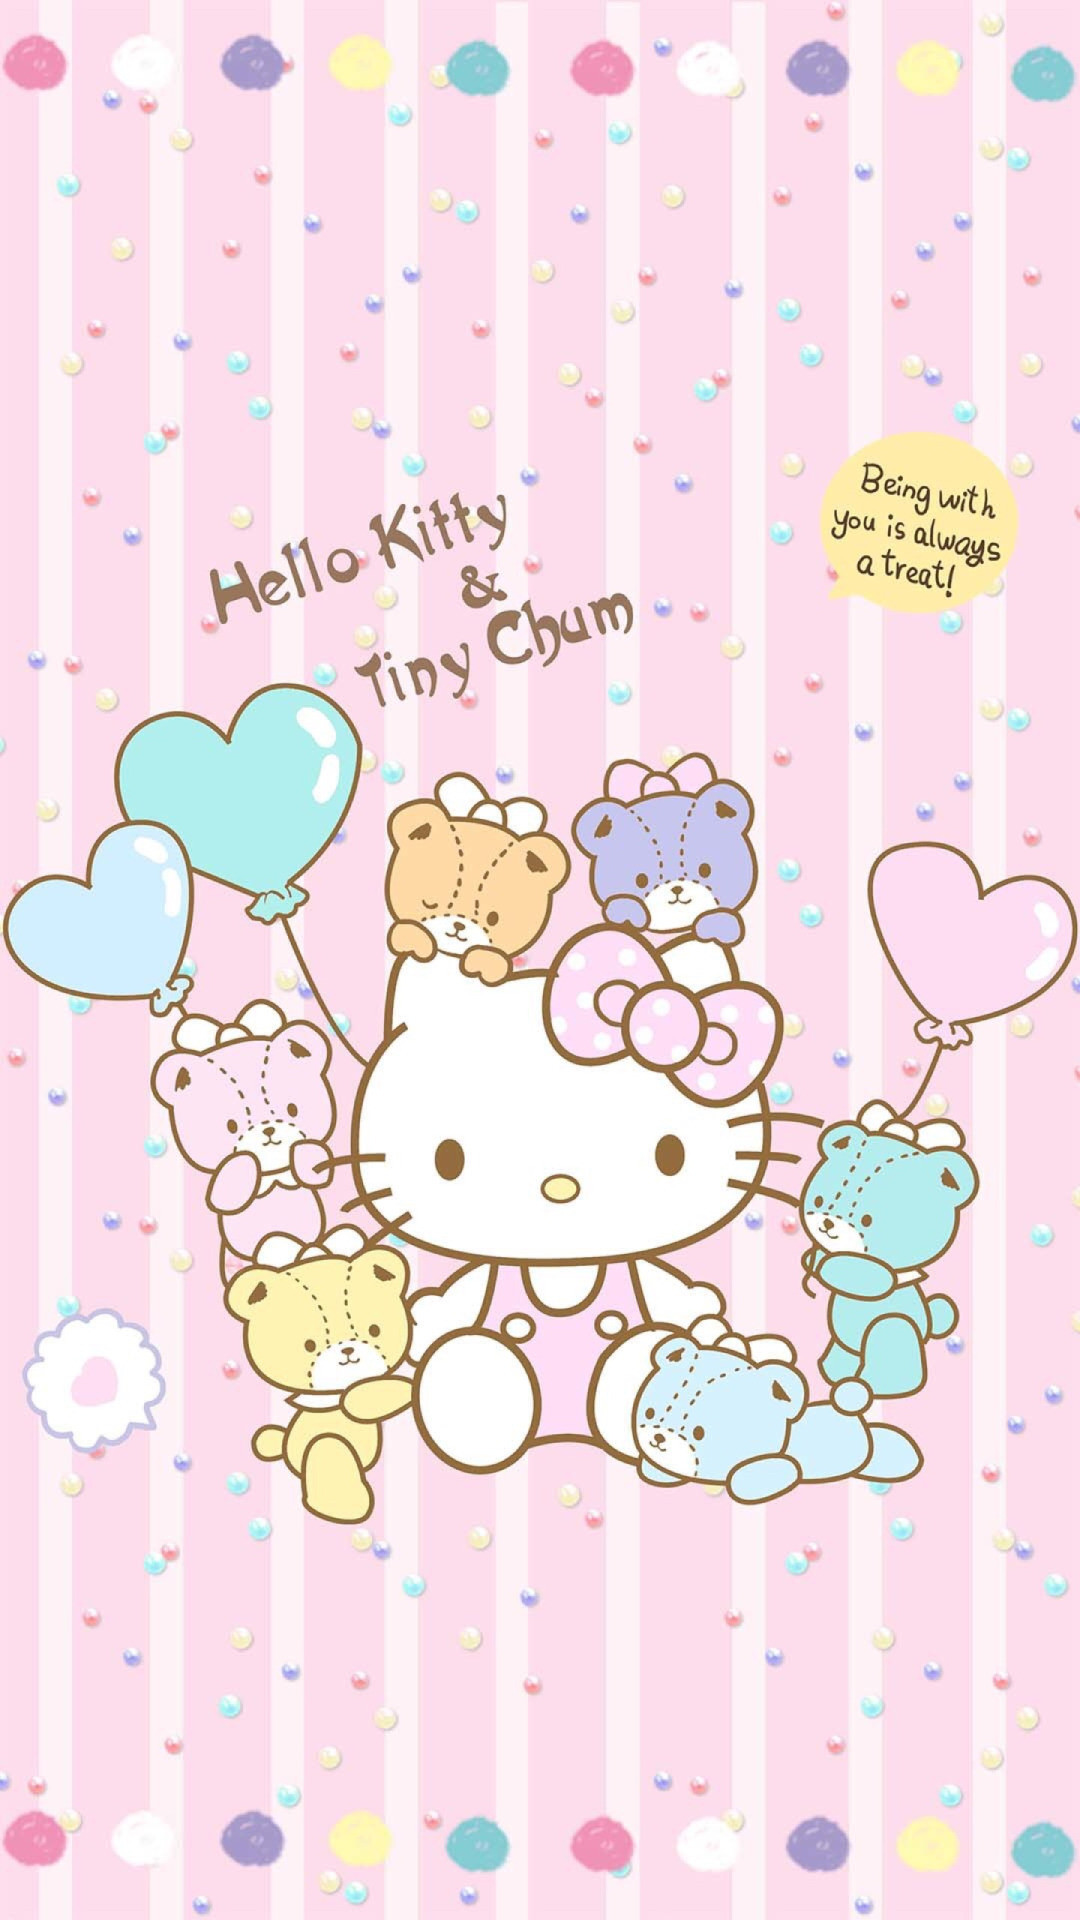 Cute Kitty Wallpaper Desktop Cute Wallpapers Of Hello Kitty 60 Images